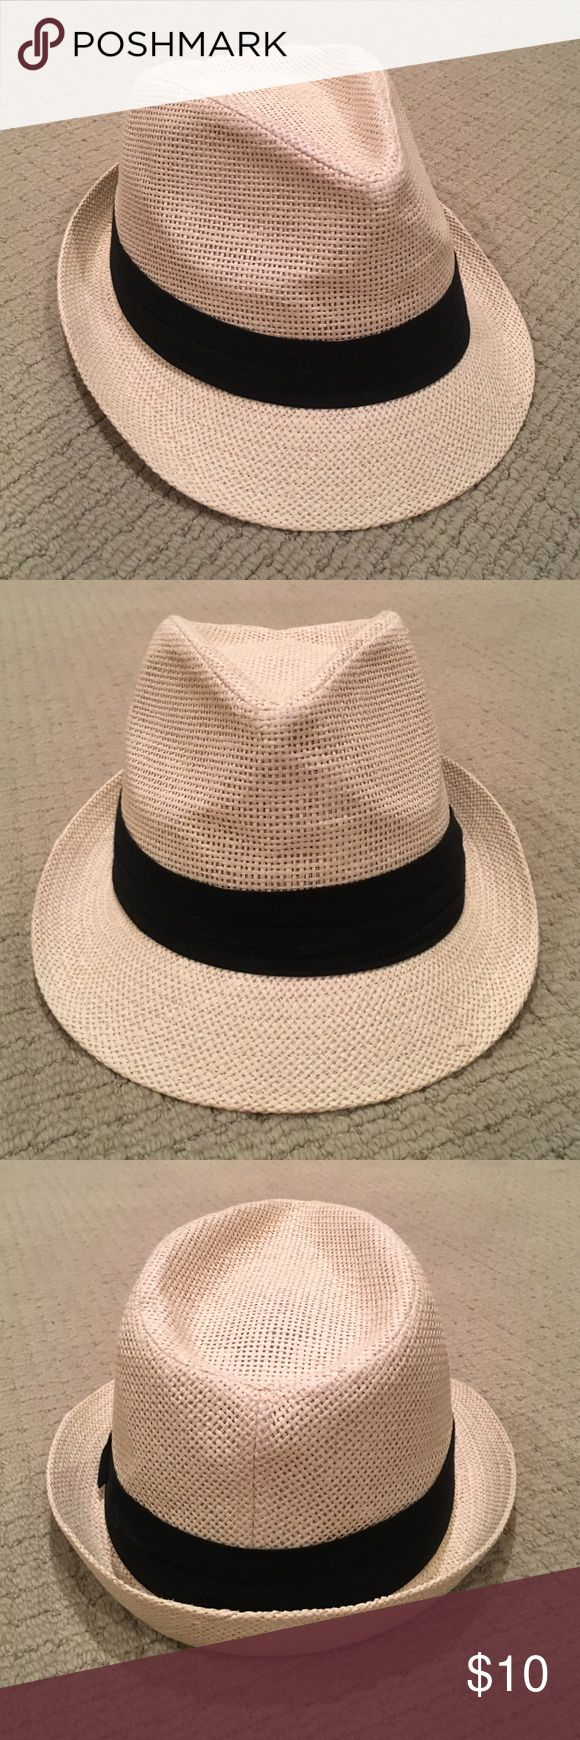 The Hatter Co. Tweed Cuban Style Fedora Hat  The Hatter Co. Tweed Classic Cuban Style Fedora Fashion Cap Hat! One size fits most. Like new! Ivory and black.  The Hatter Company Accessories Hats